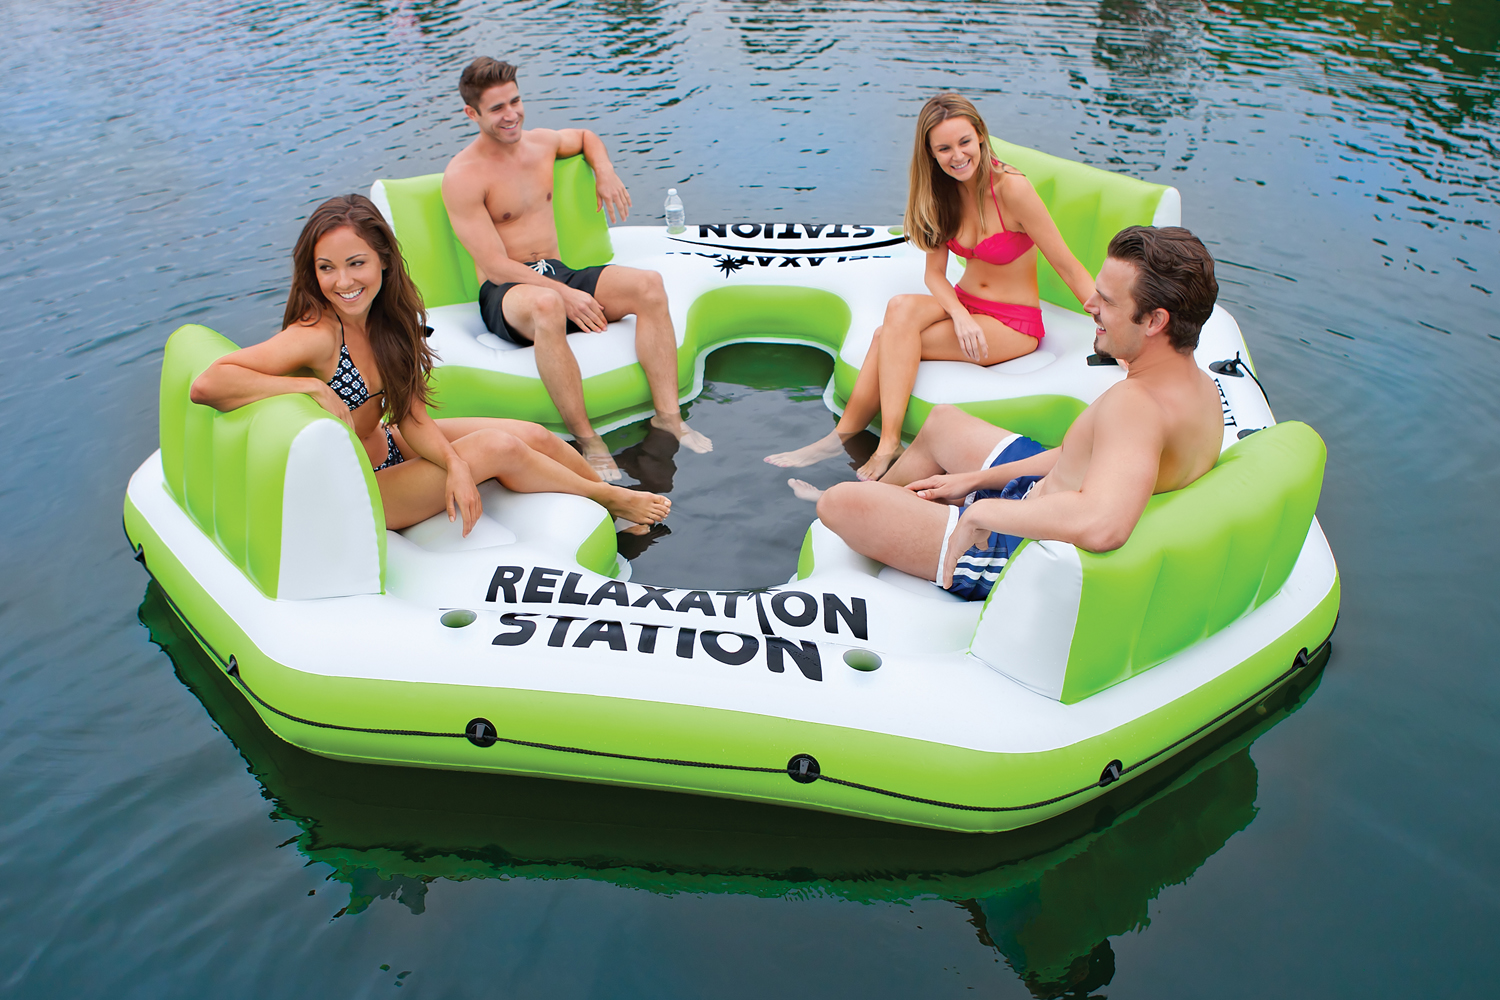 Intex Relaxation Station 4-Person Water Lounge Raft - Green | 58296EP